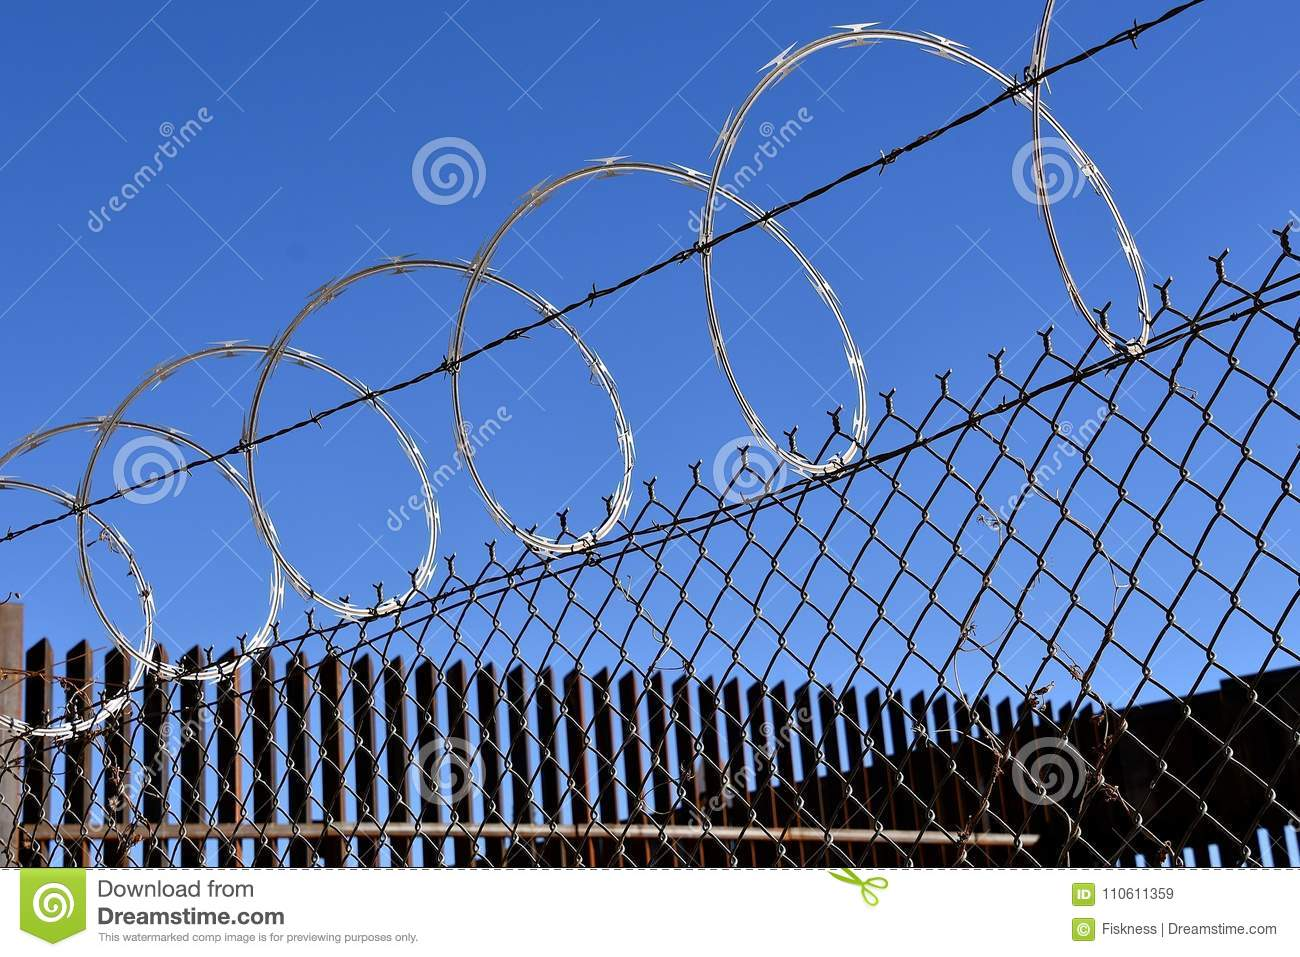 Concertina Fence Wire In Prisons Stock Image - Image of hidden ...